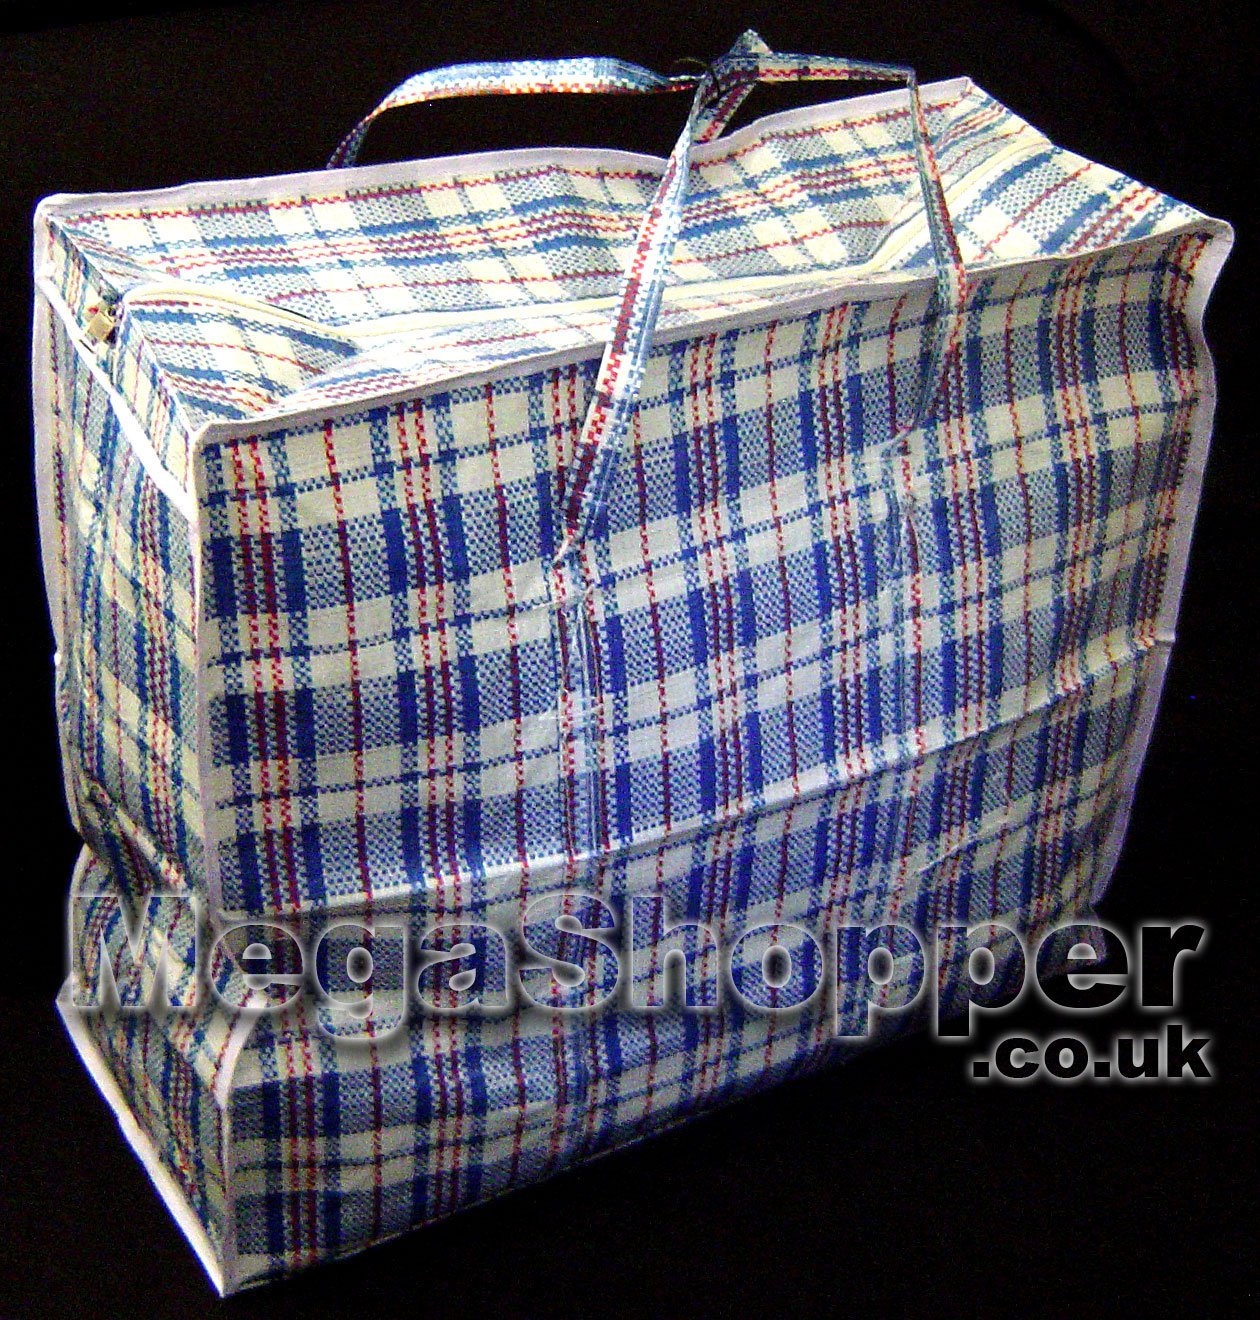 Where Can I Buy Laundry Bags Urgent Help Needed To Buy Cheap Affordable Carry On Bag